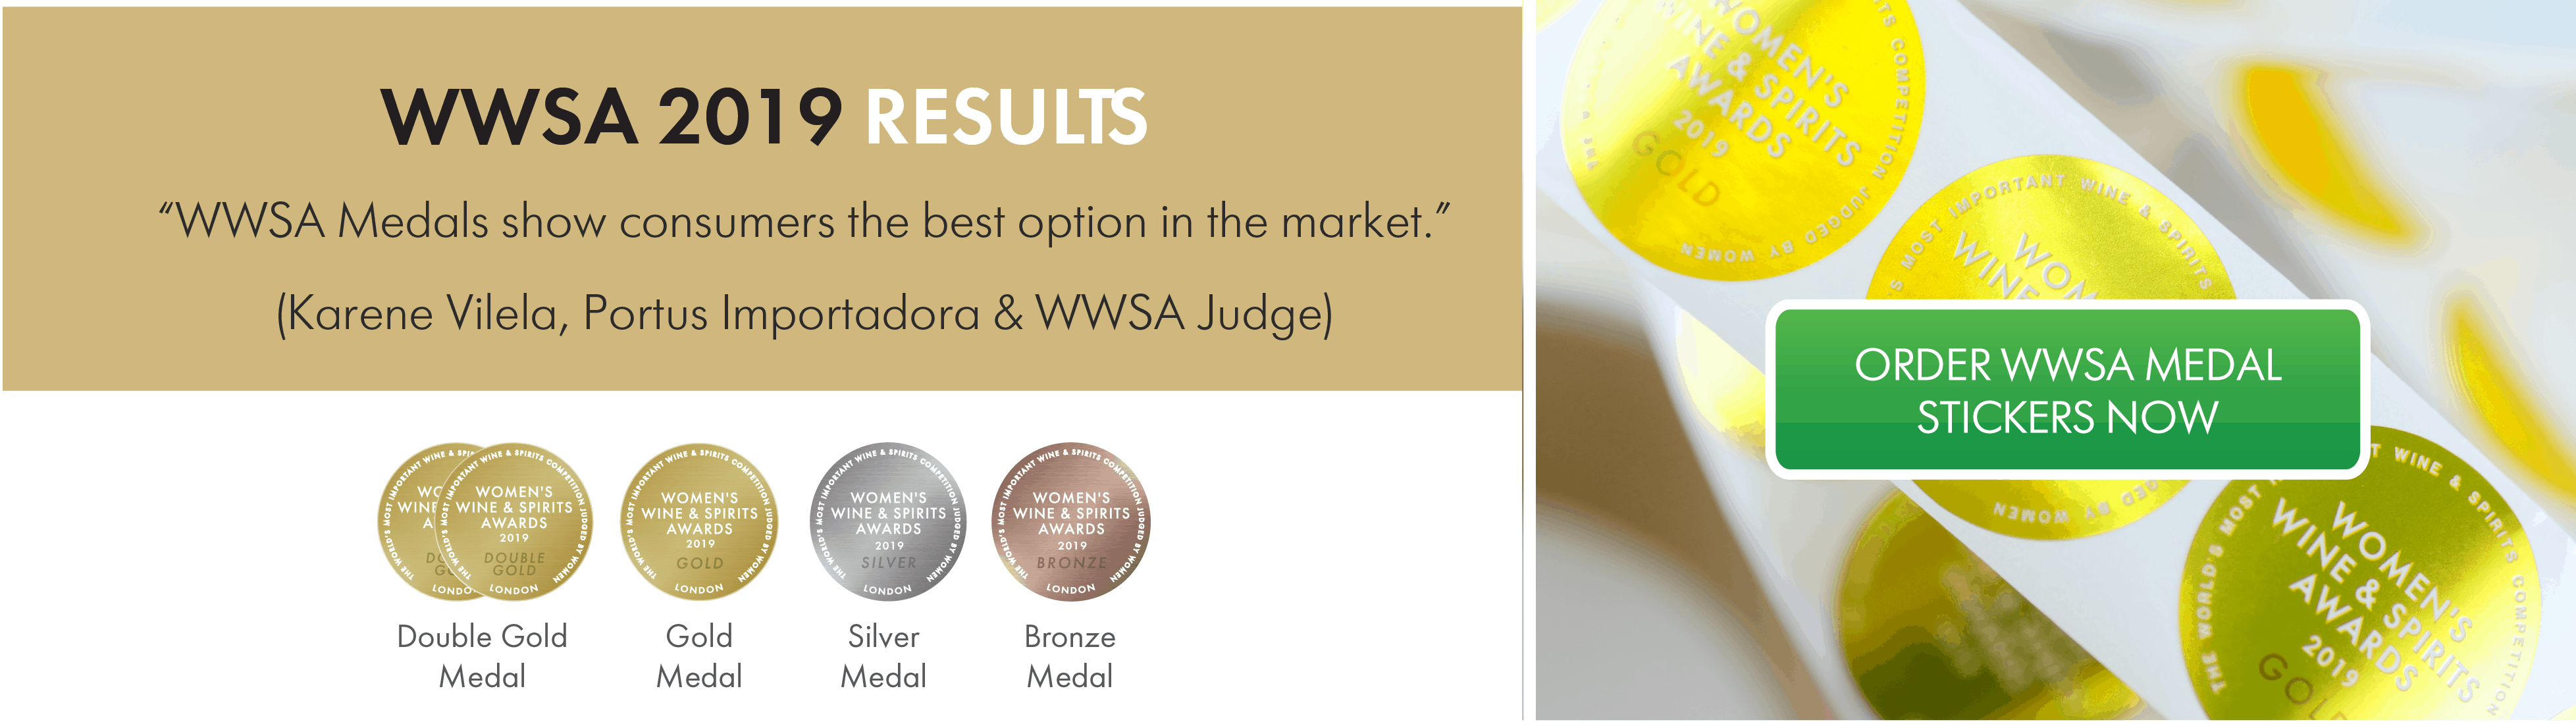 WWSA 2019 Results - Women's Wine & Spirits Awards